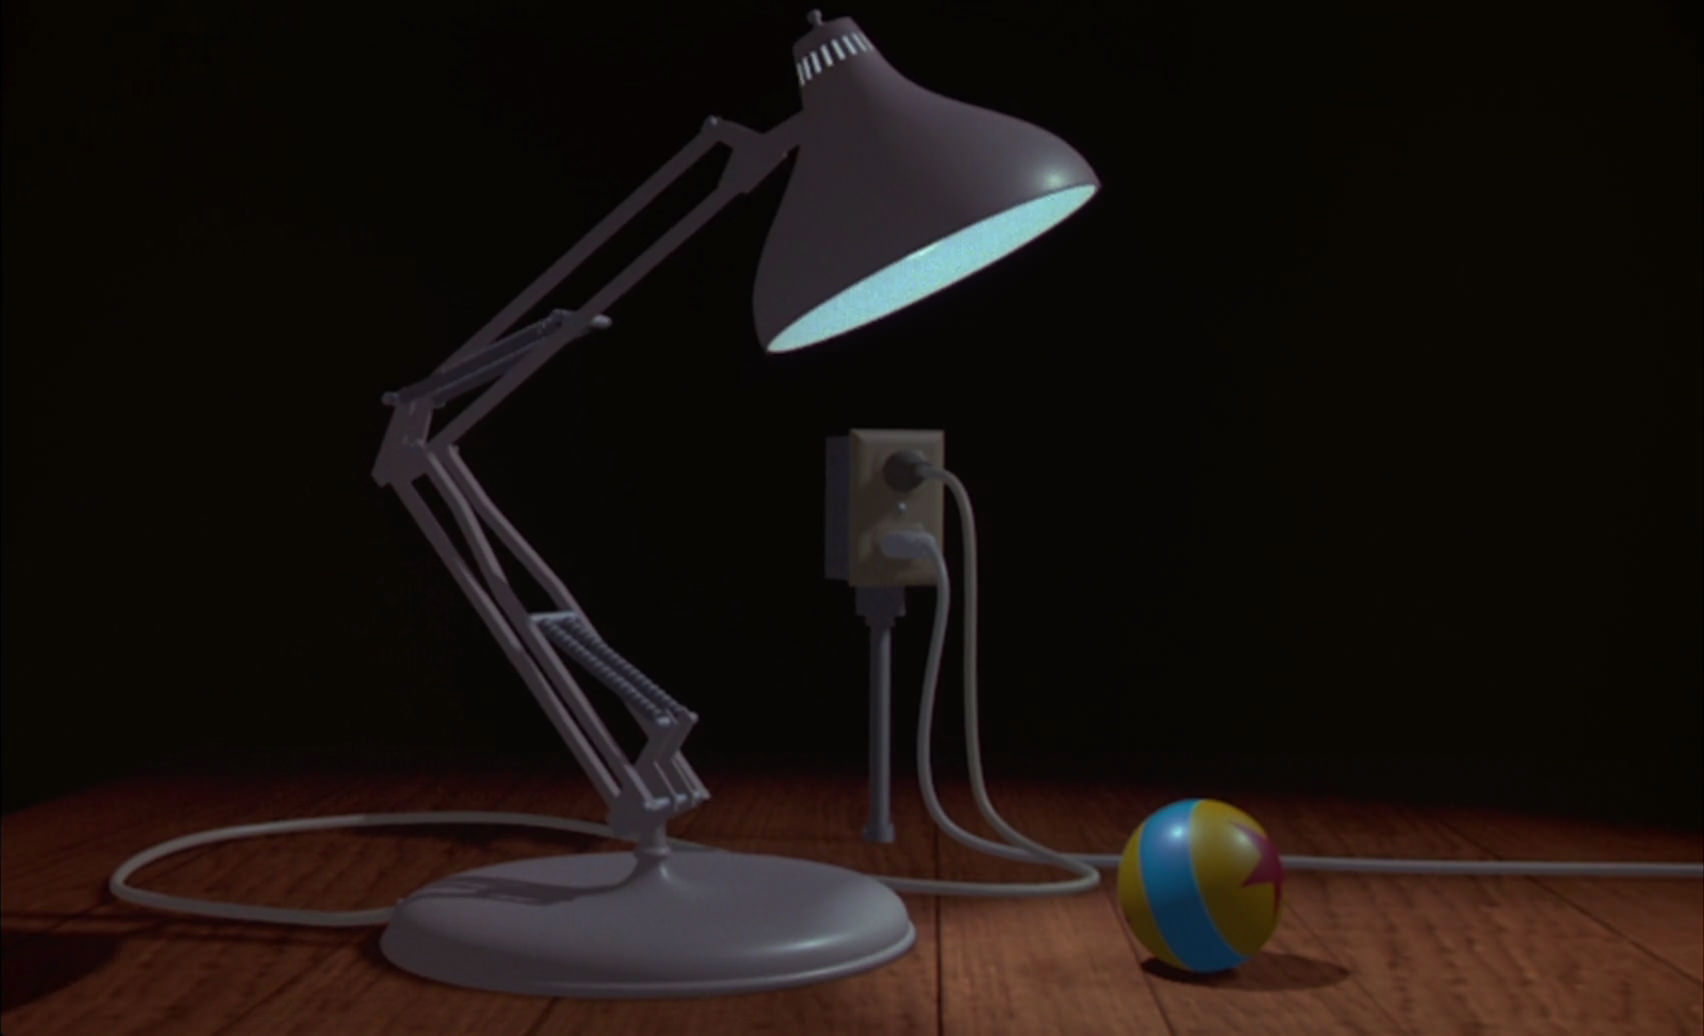 Pixar Shorts Luxo Jr 1986 Animation Screencaps Interiors Inside Ideas Interiors design about Everything [magnanprojects.com]